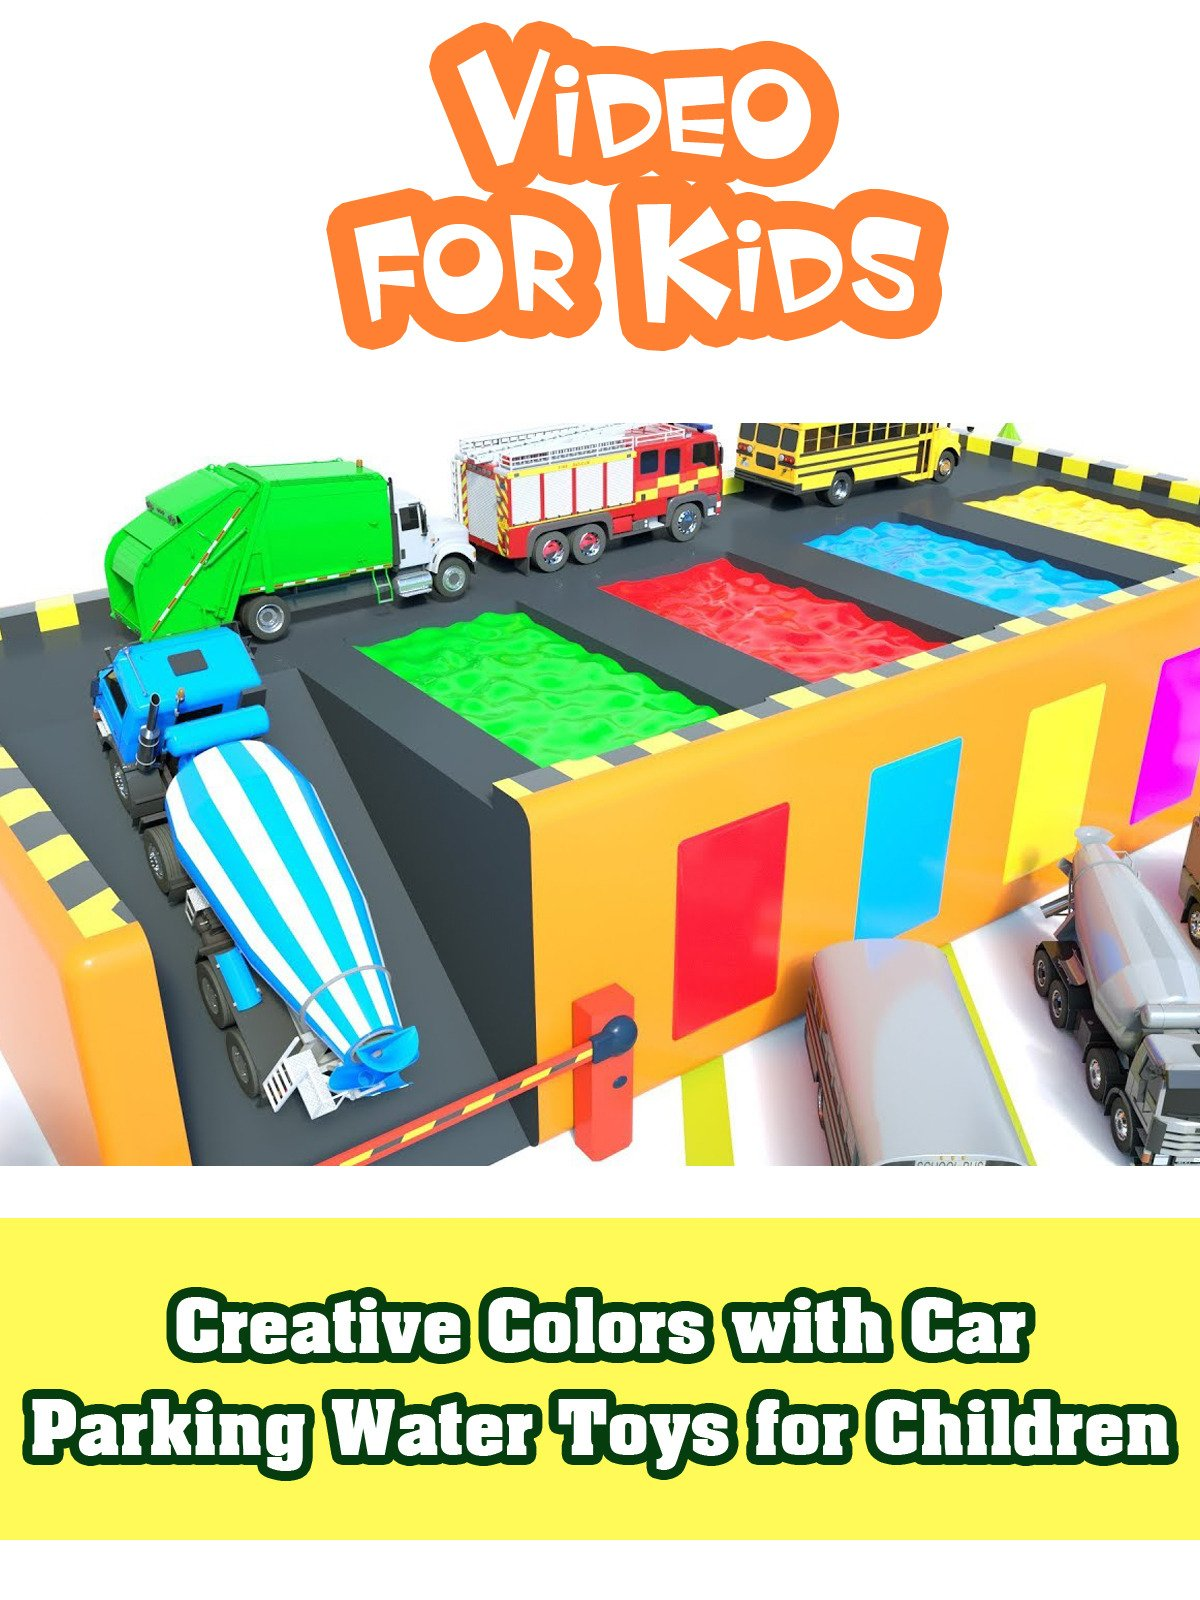 Creative Colors with Car Parking Water Toys for Children